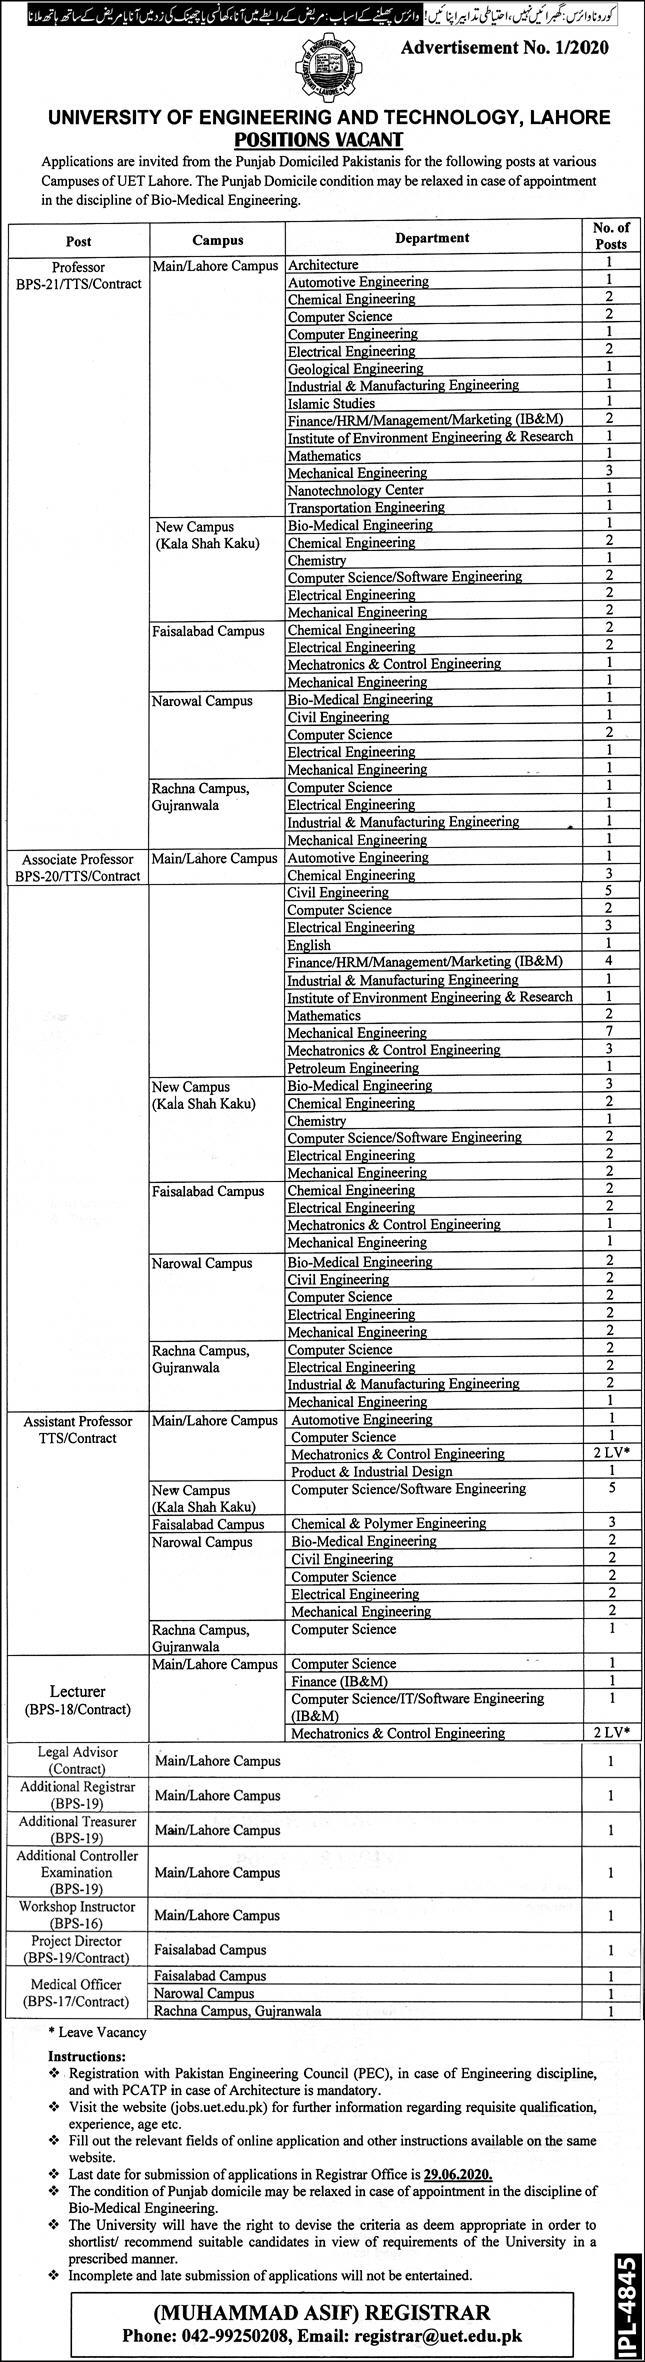 University of Engineering and Technology Lahore Jobs June 2020